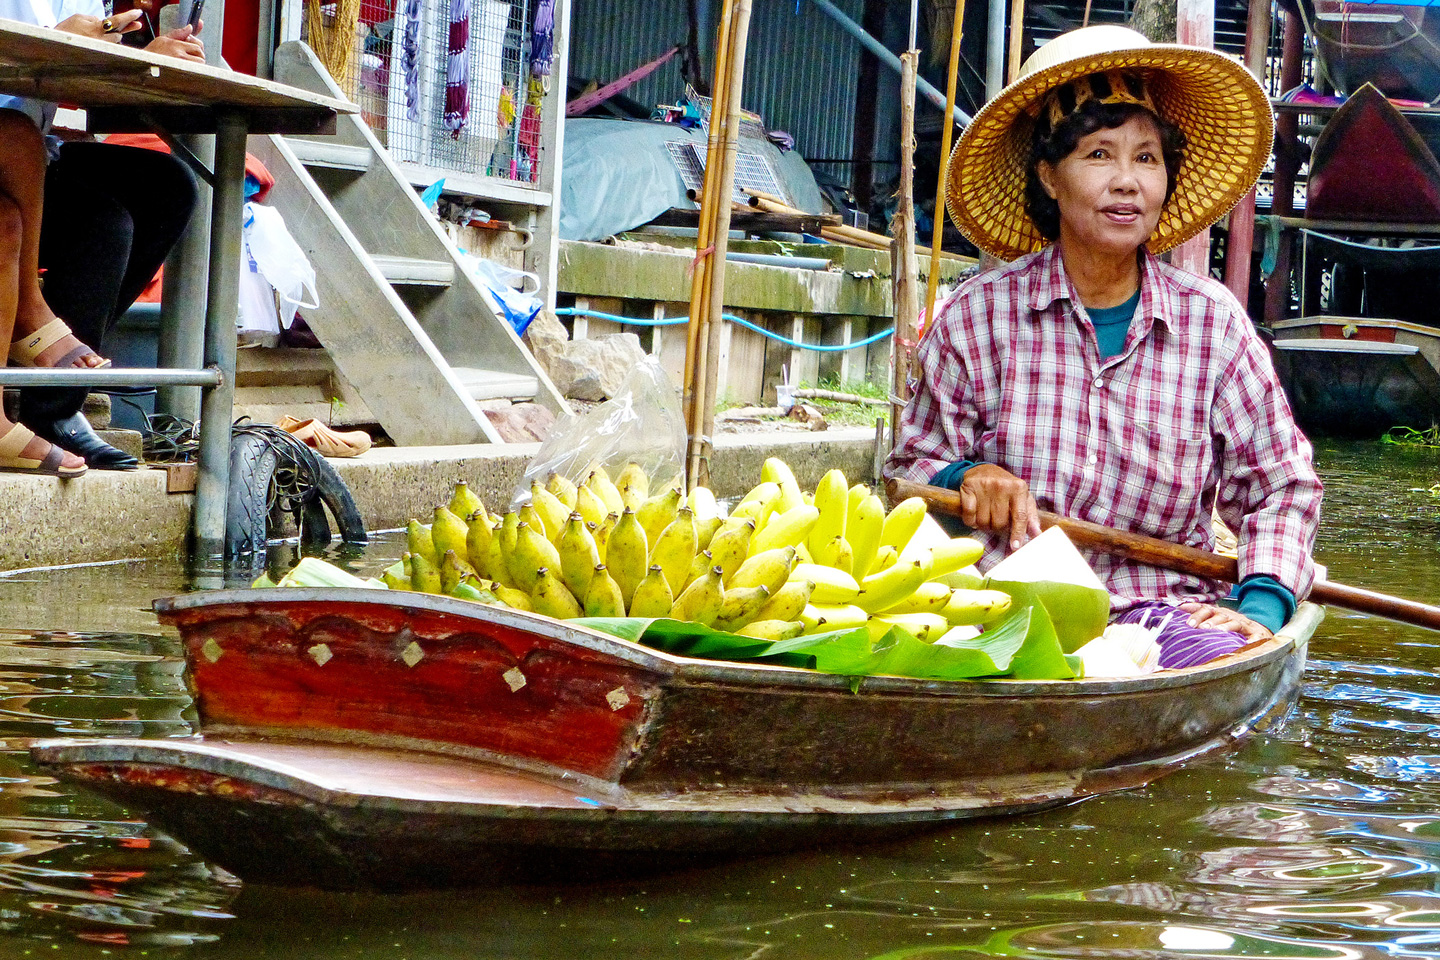 Local woman selling bananas from a boat